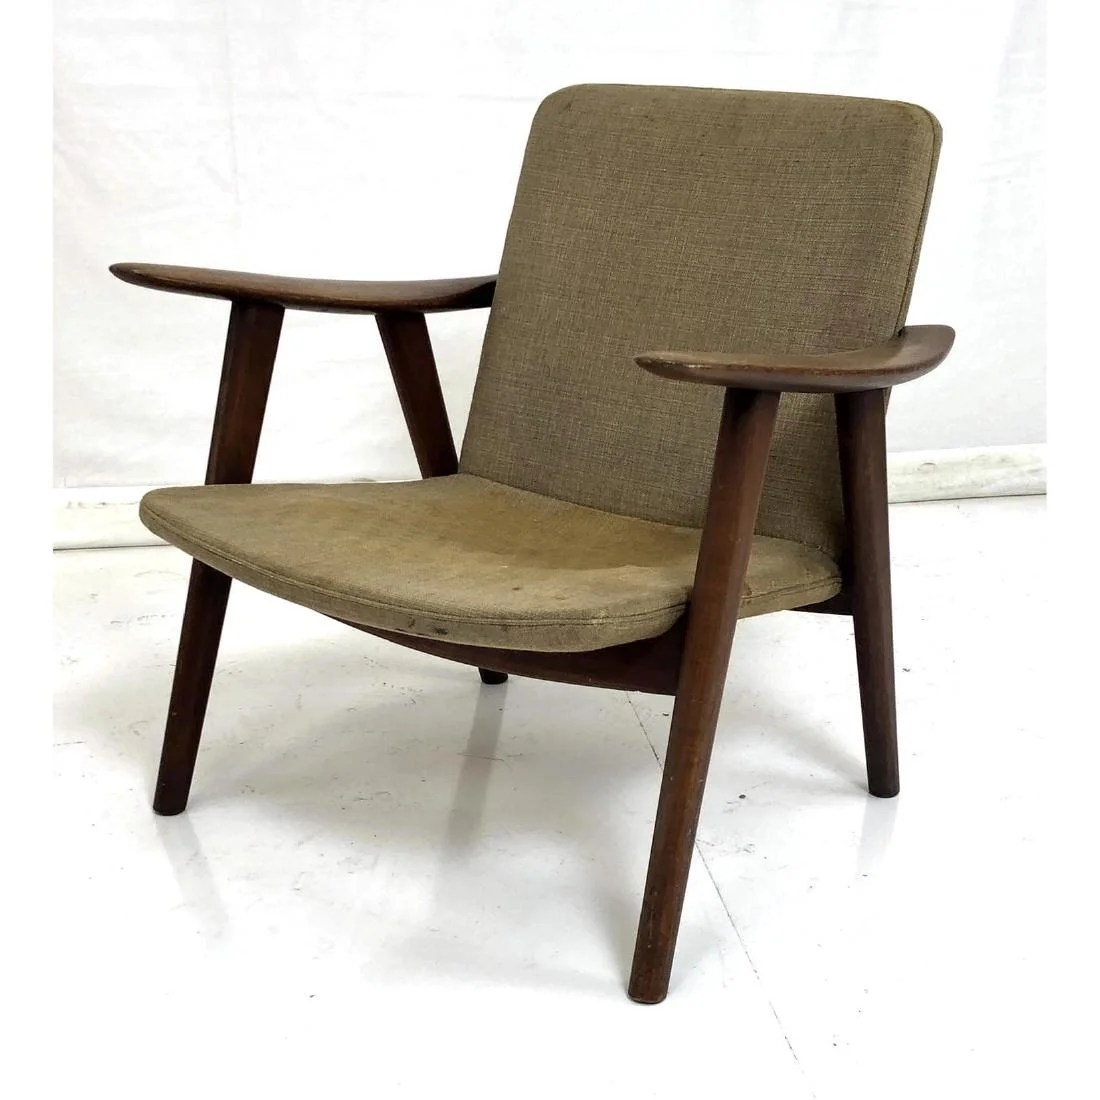 Early Hans Wegner Modernist Lounge Chair Danish Apr 02 2019 Uniques Antiques Inc In Pa